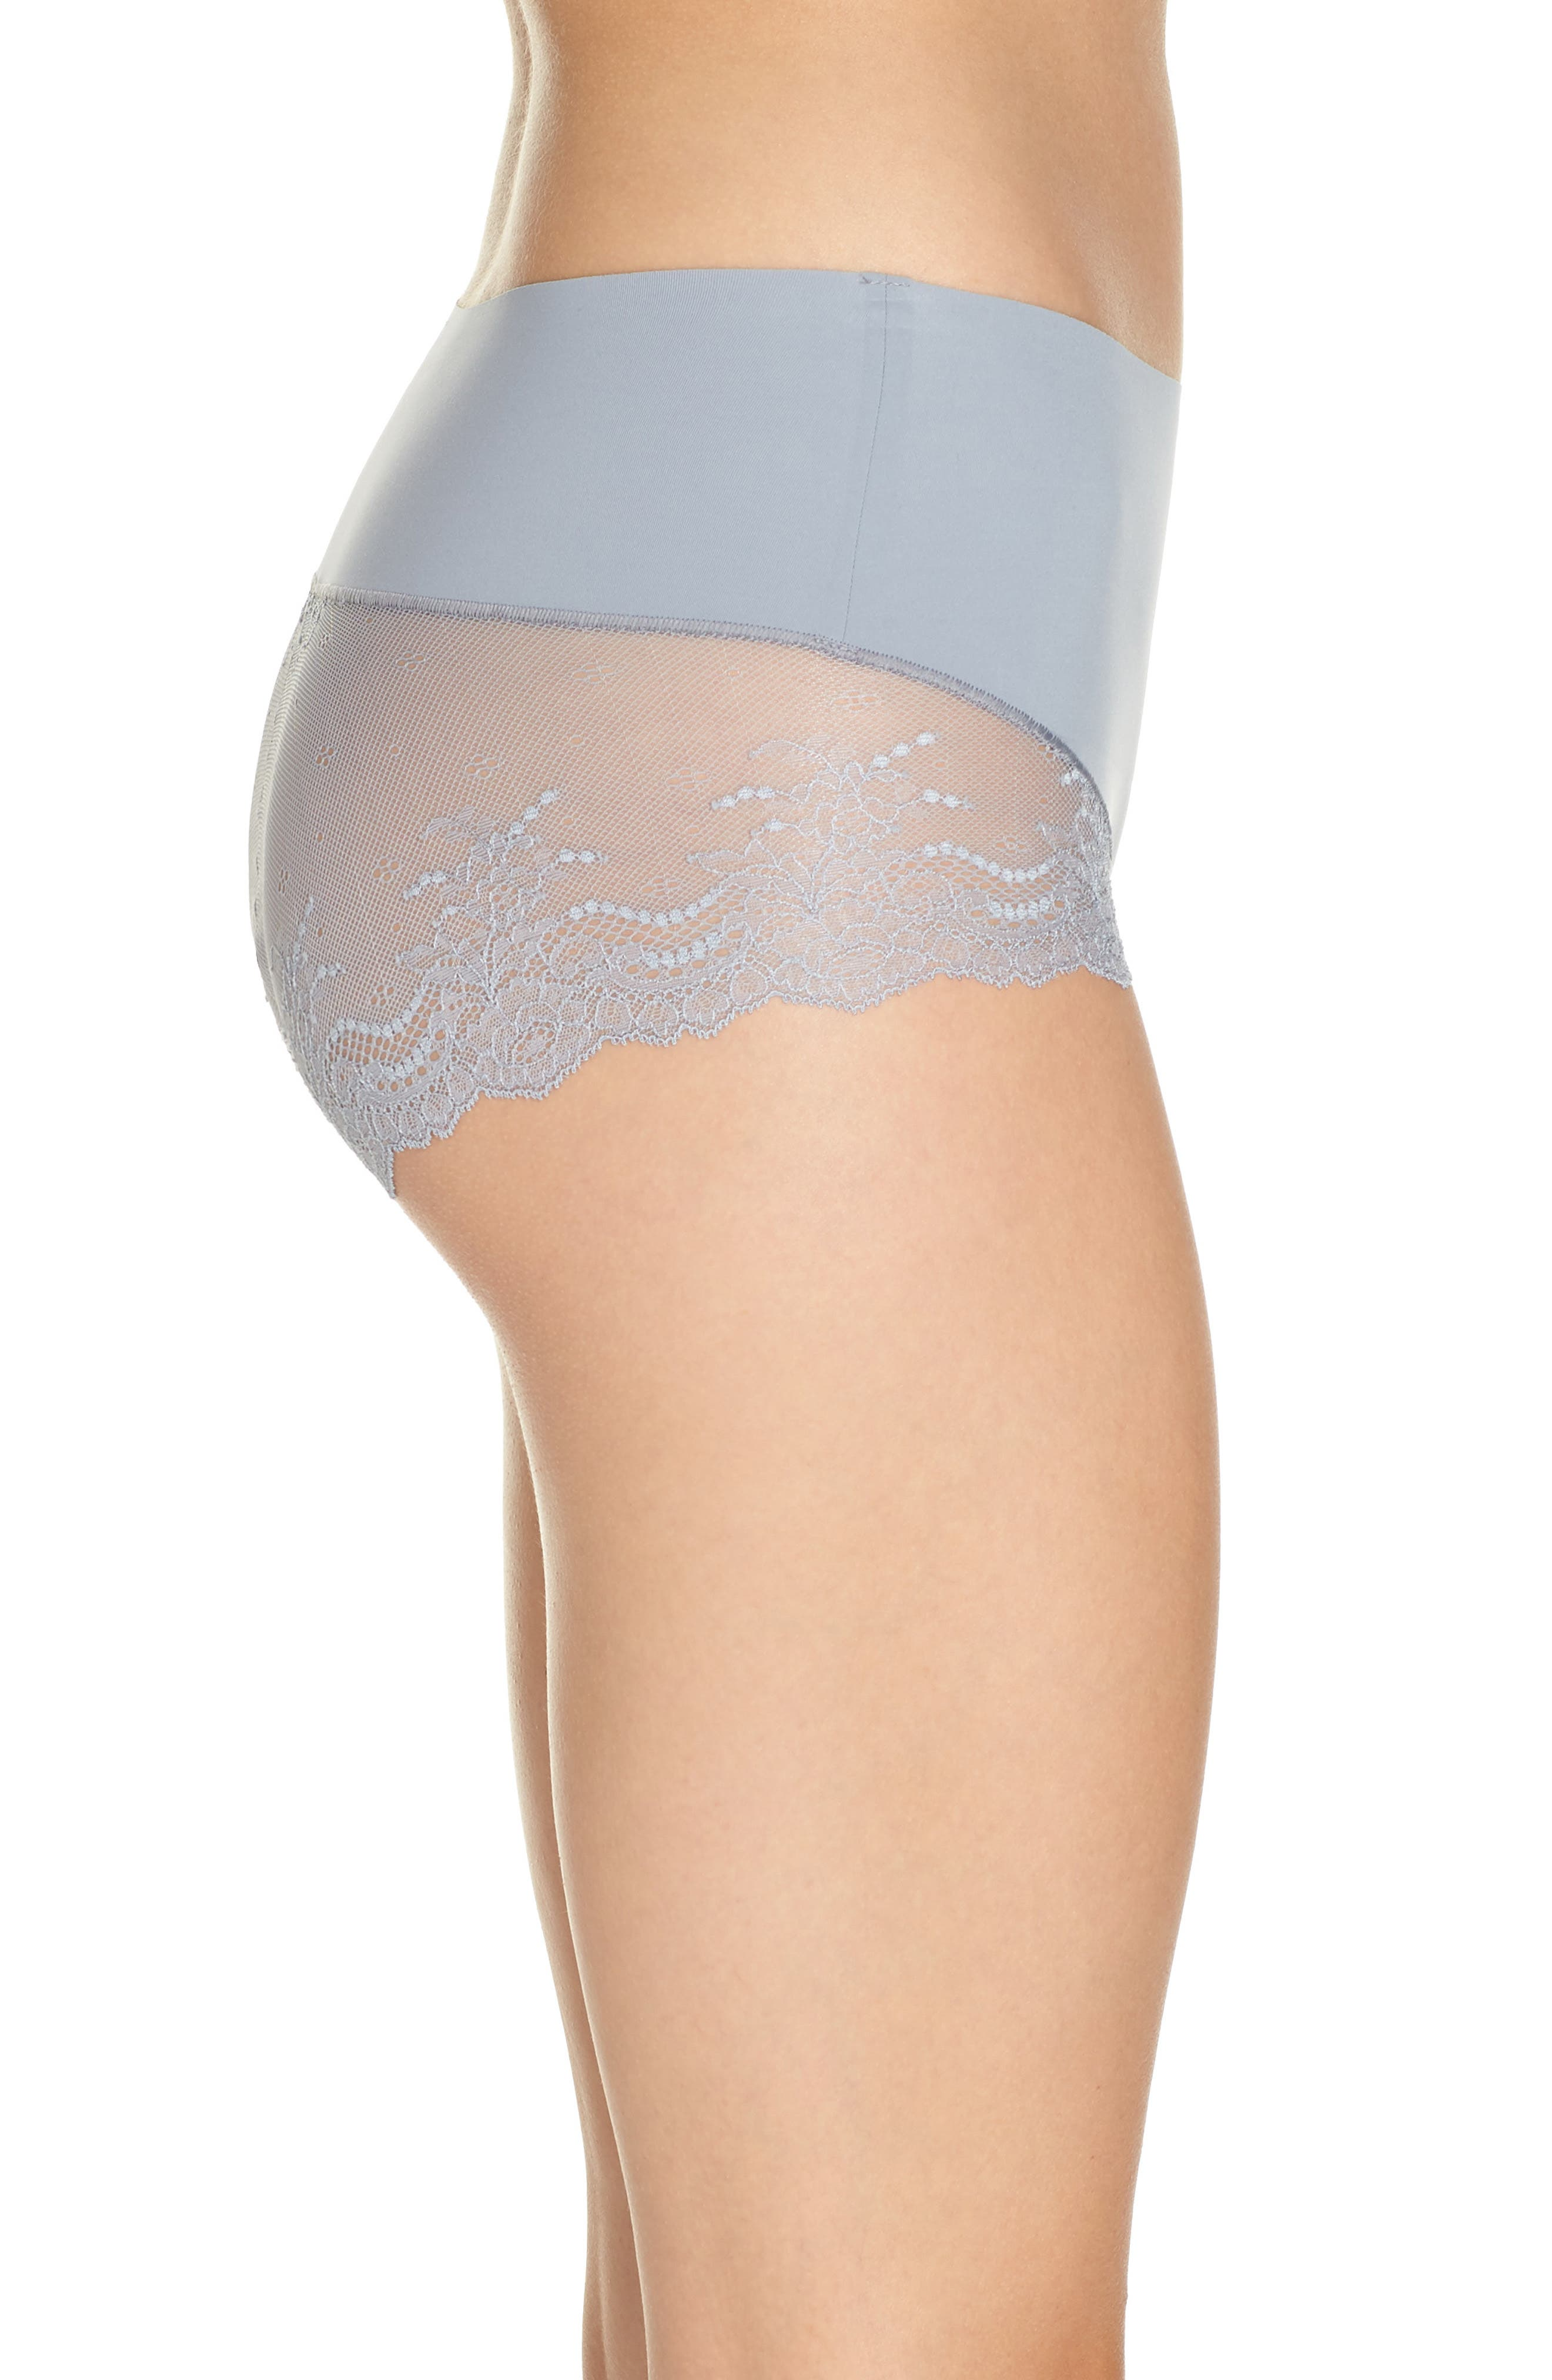 Undie-tectable Lace Hipster Panties,                             Alternate thumbnail 3, color,                             FOG GREY